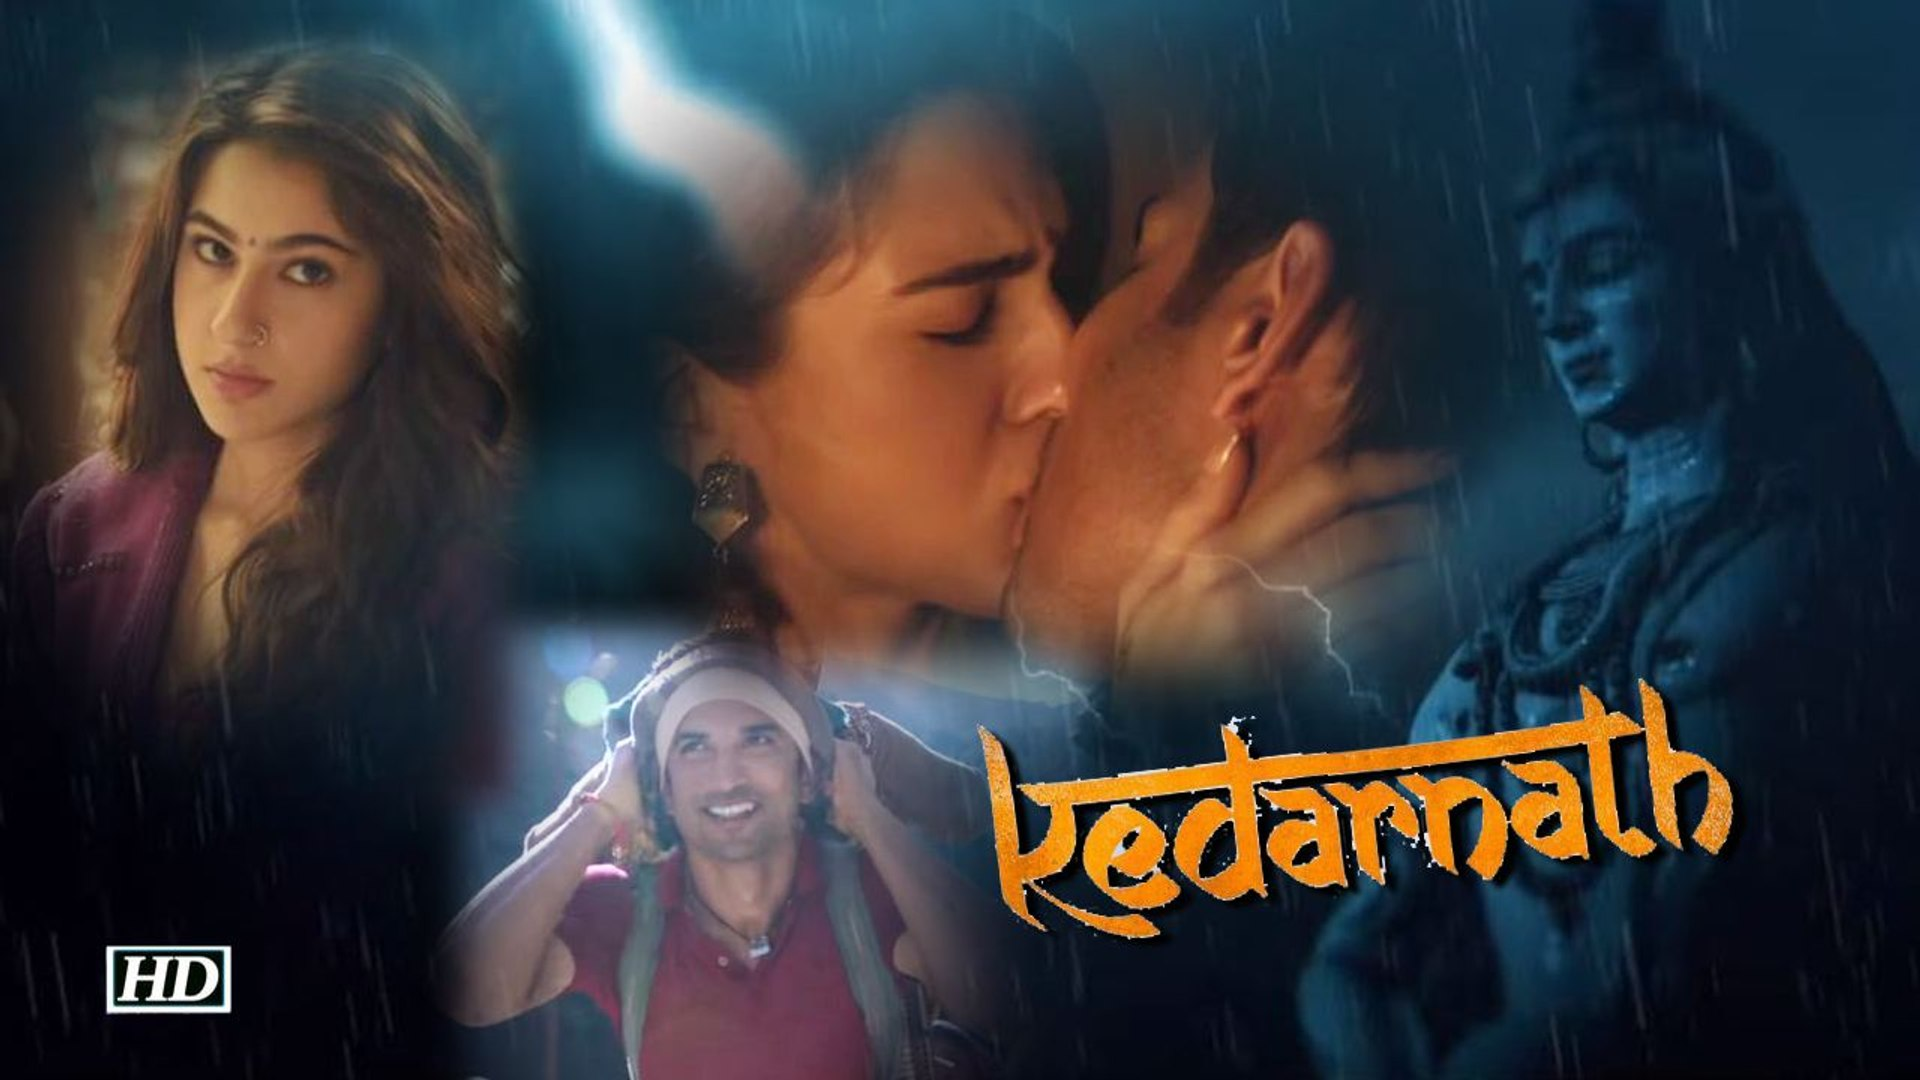 kedarnath full movie watch online free hd filmywap